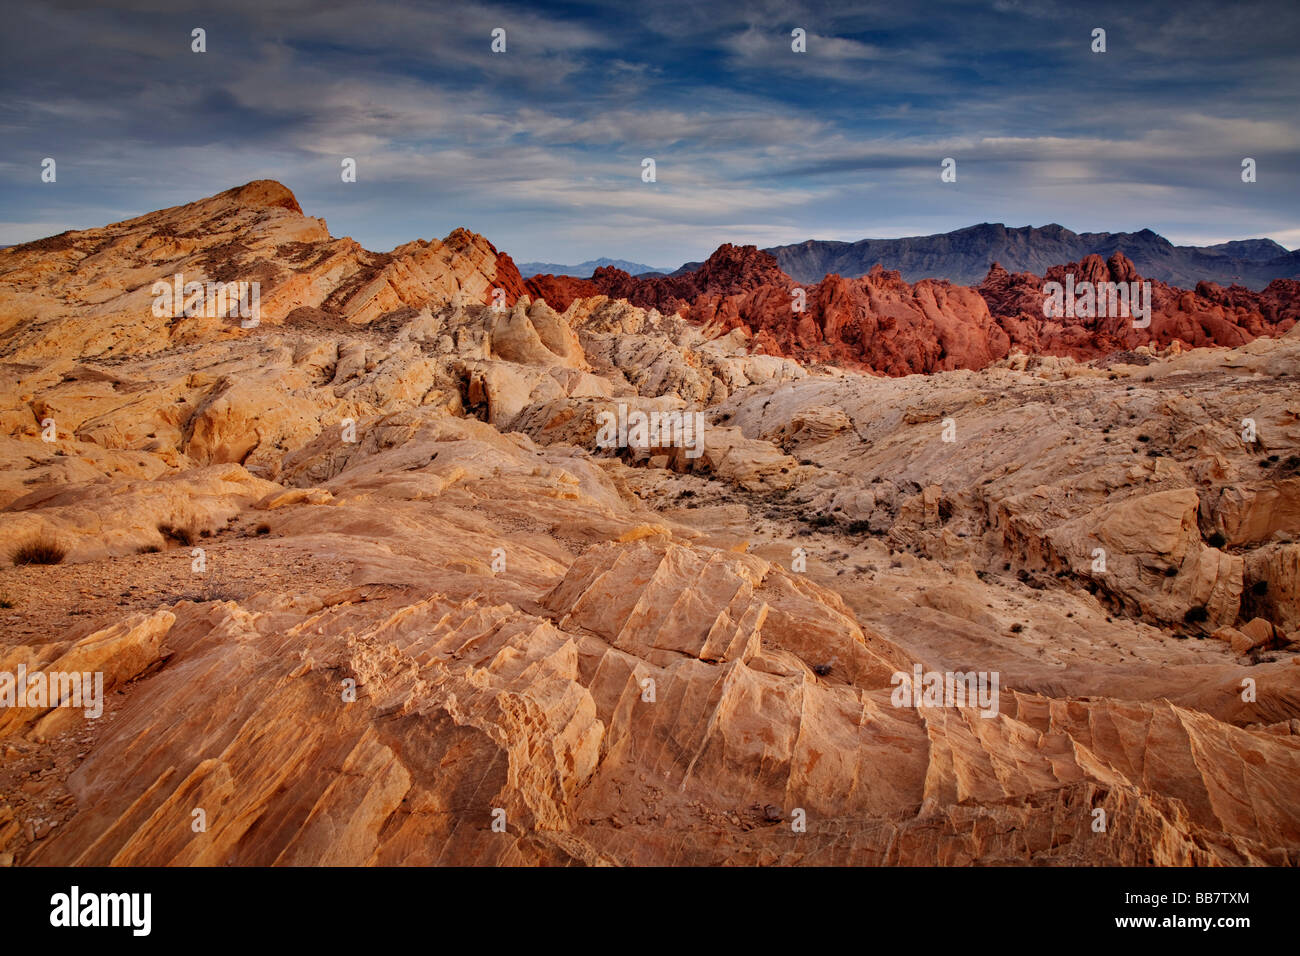 Das Valley Of Fire in der Nähe von Las Vegas in Nevada, USA Stockbild